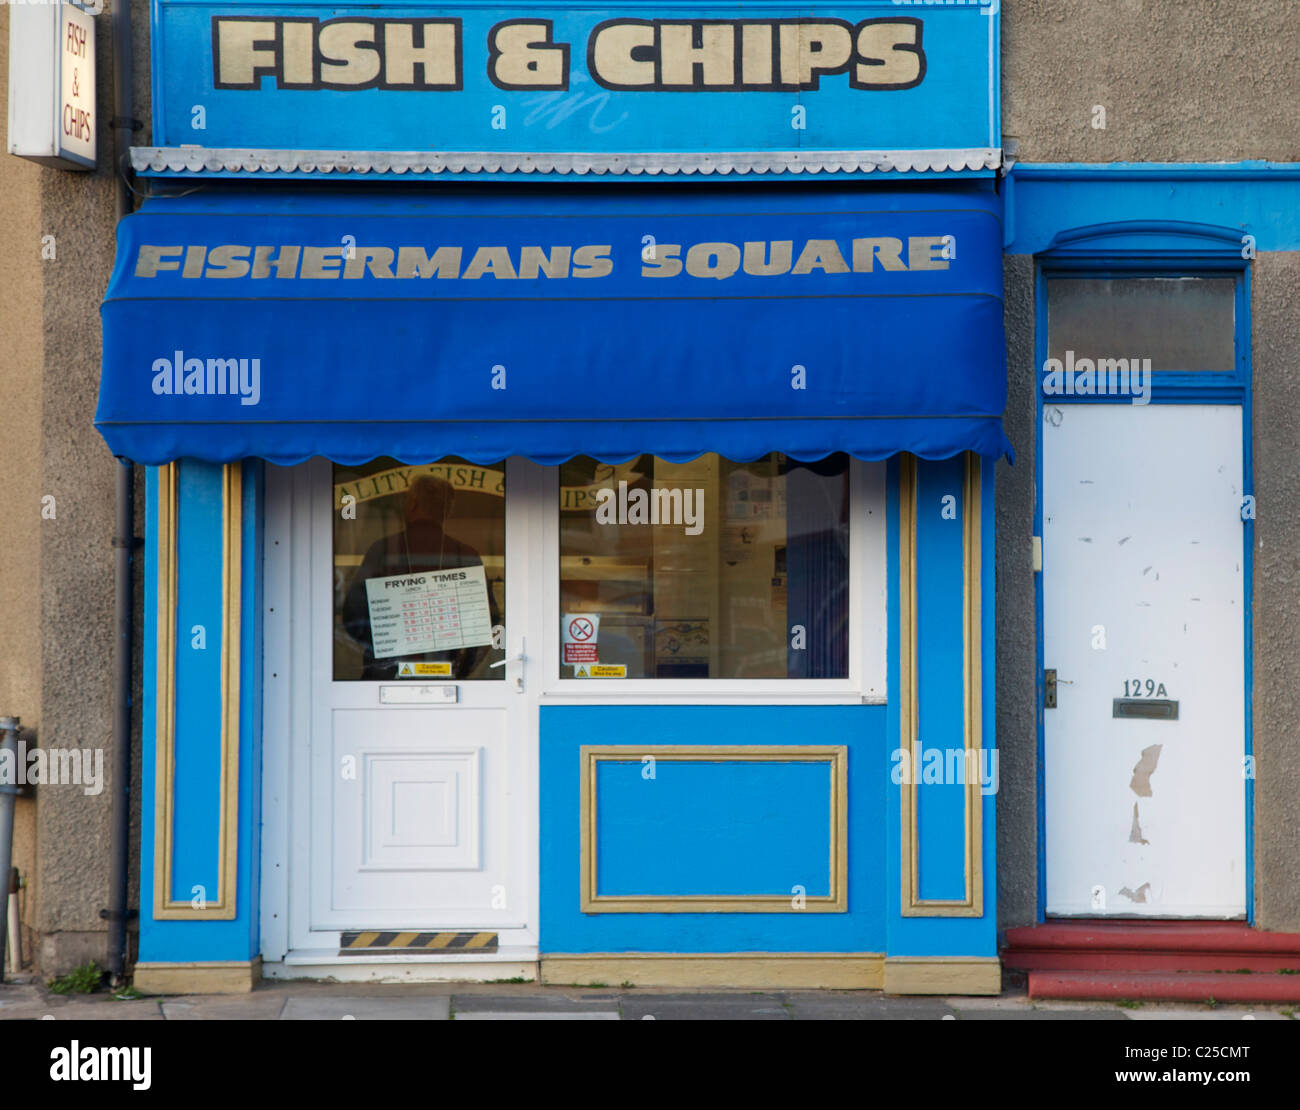 Fish and Chip shop at Fishermans Square, Redcar, Teeside Stock Photo